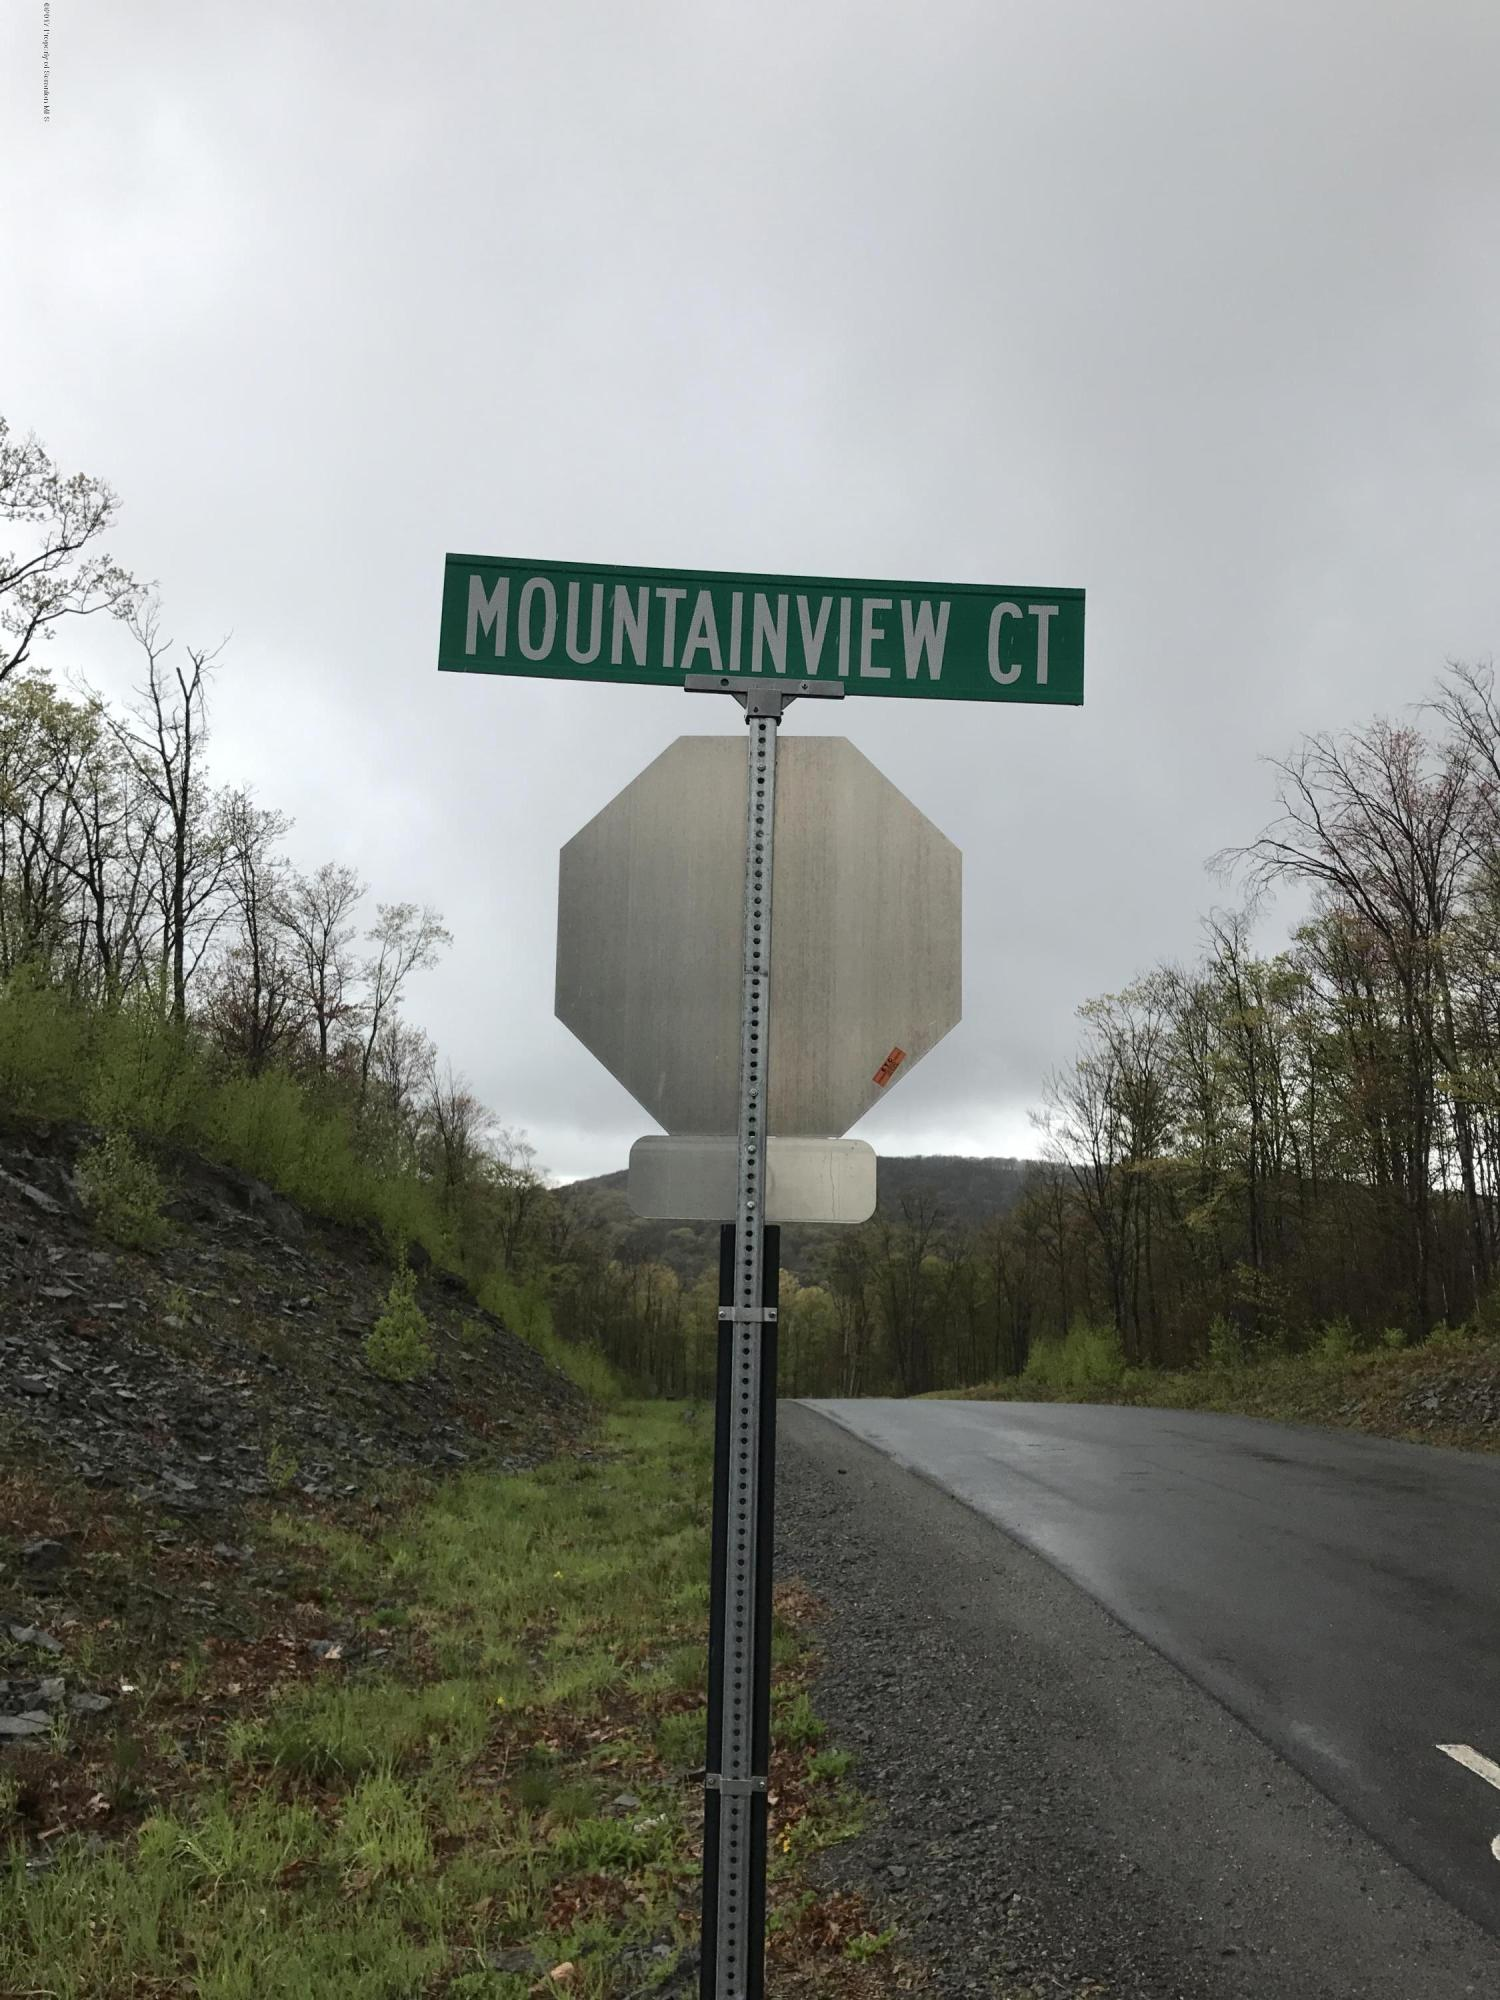 72 Mountainview Ct, Roaring Brook Twp, Pennsylvania 18444, ,Land,For Sale,Mountainview,17-1969